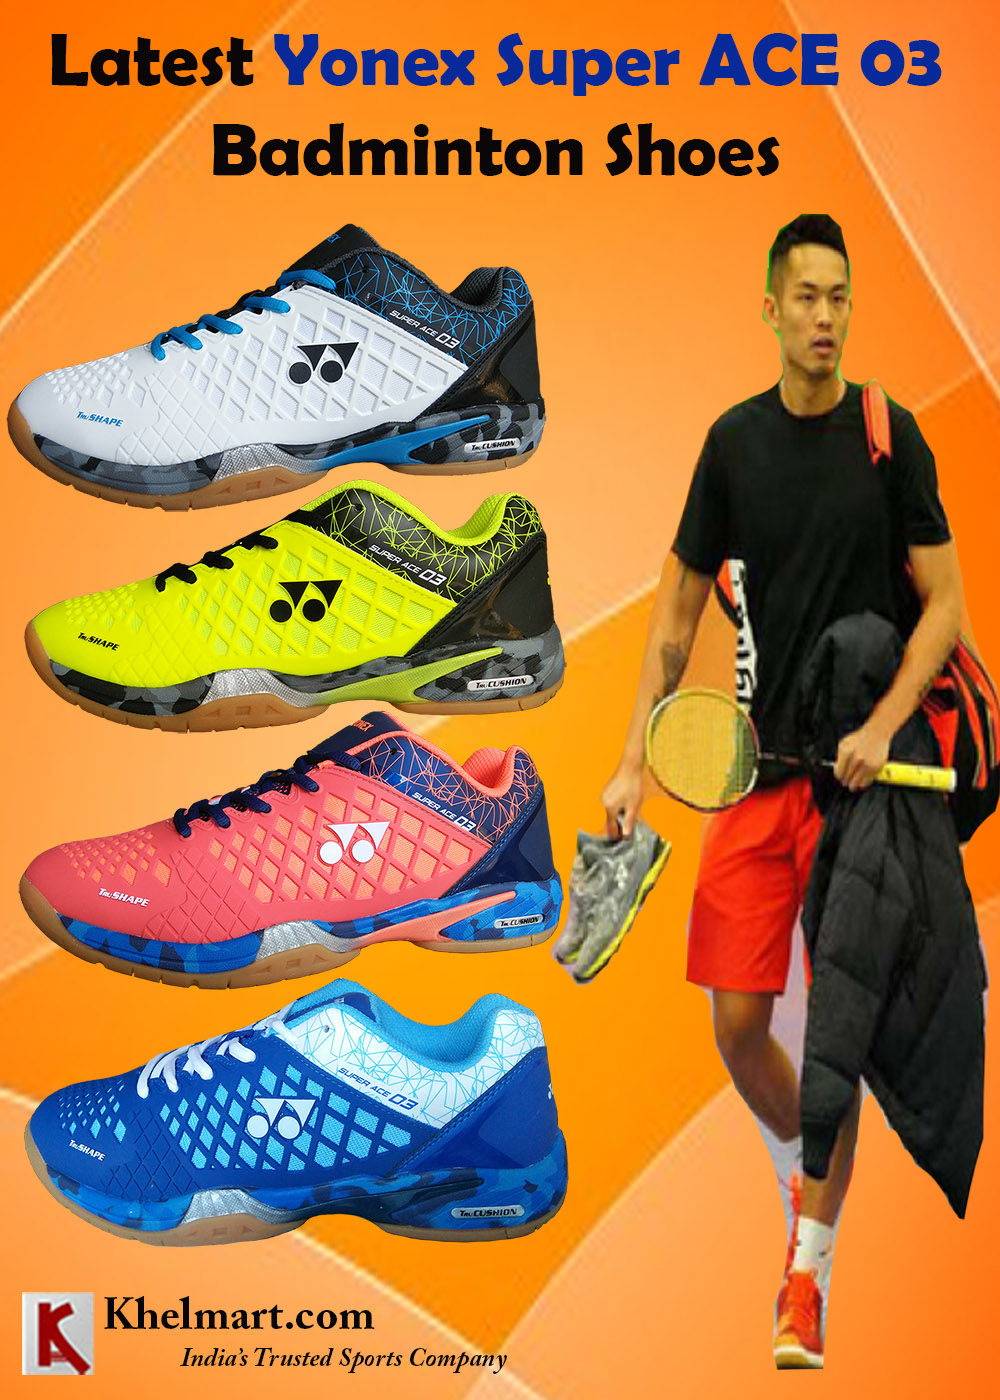 Latest Yonex Super ACE 03 Badminton Shoes